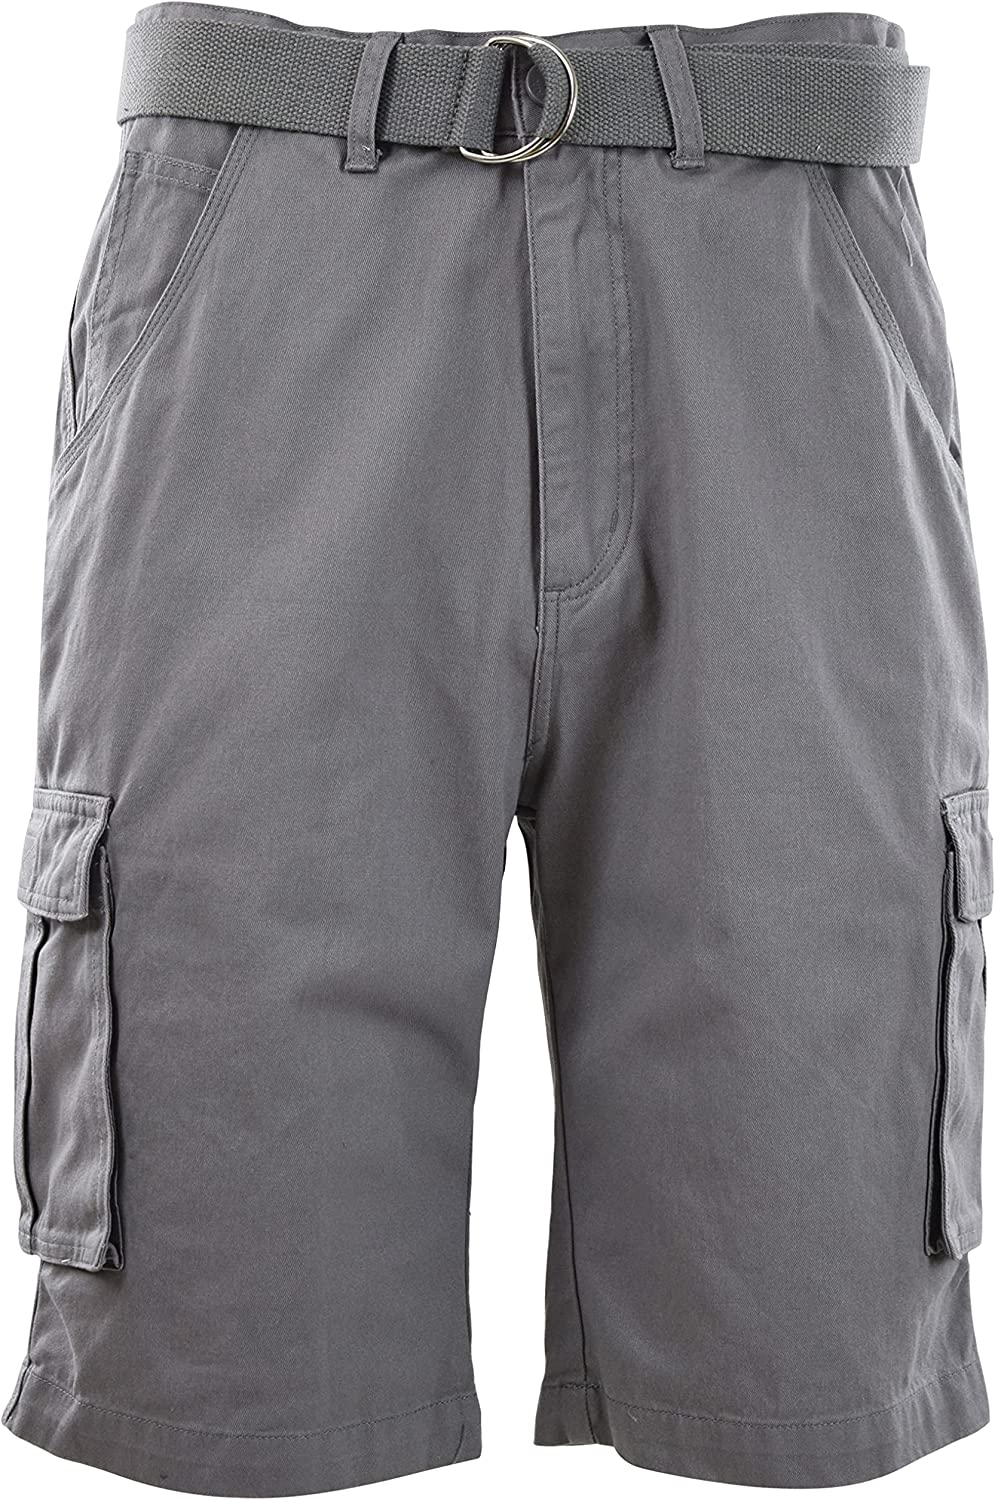 ChoiceApparel Max 90% OFF Now on sale Mens Cargo and Non-Cargo Casual Shorts